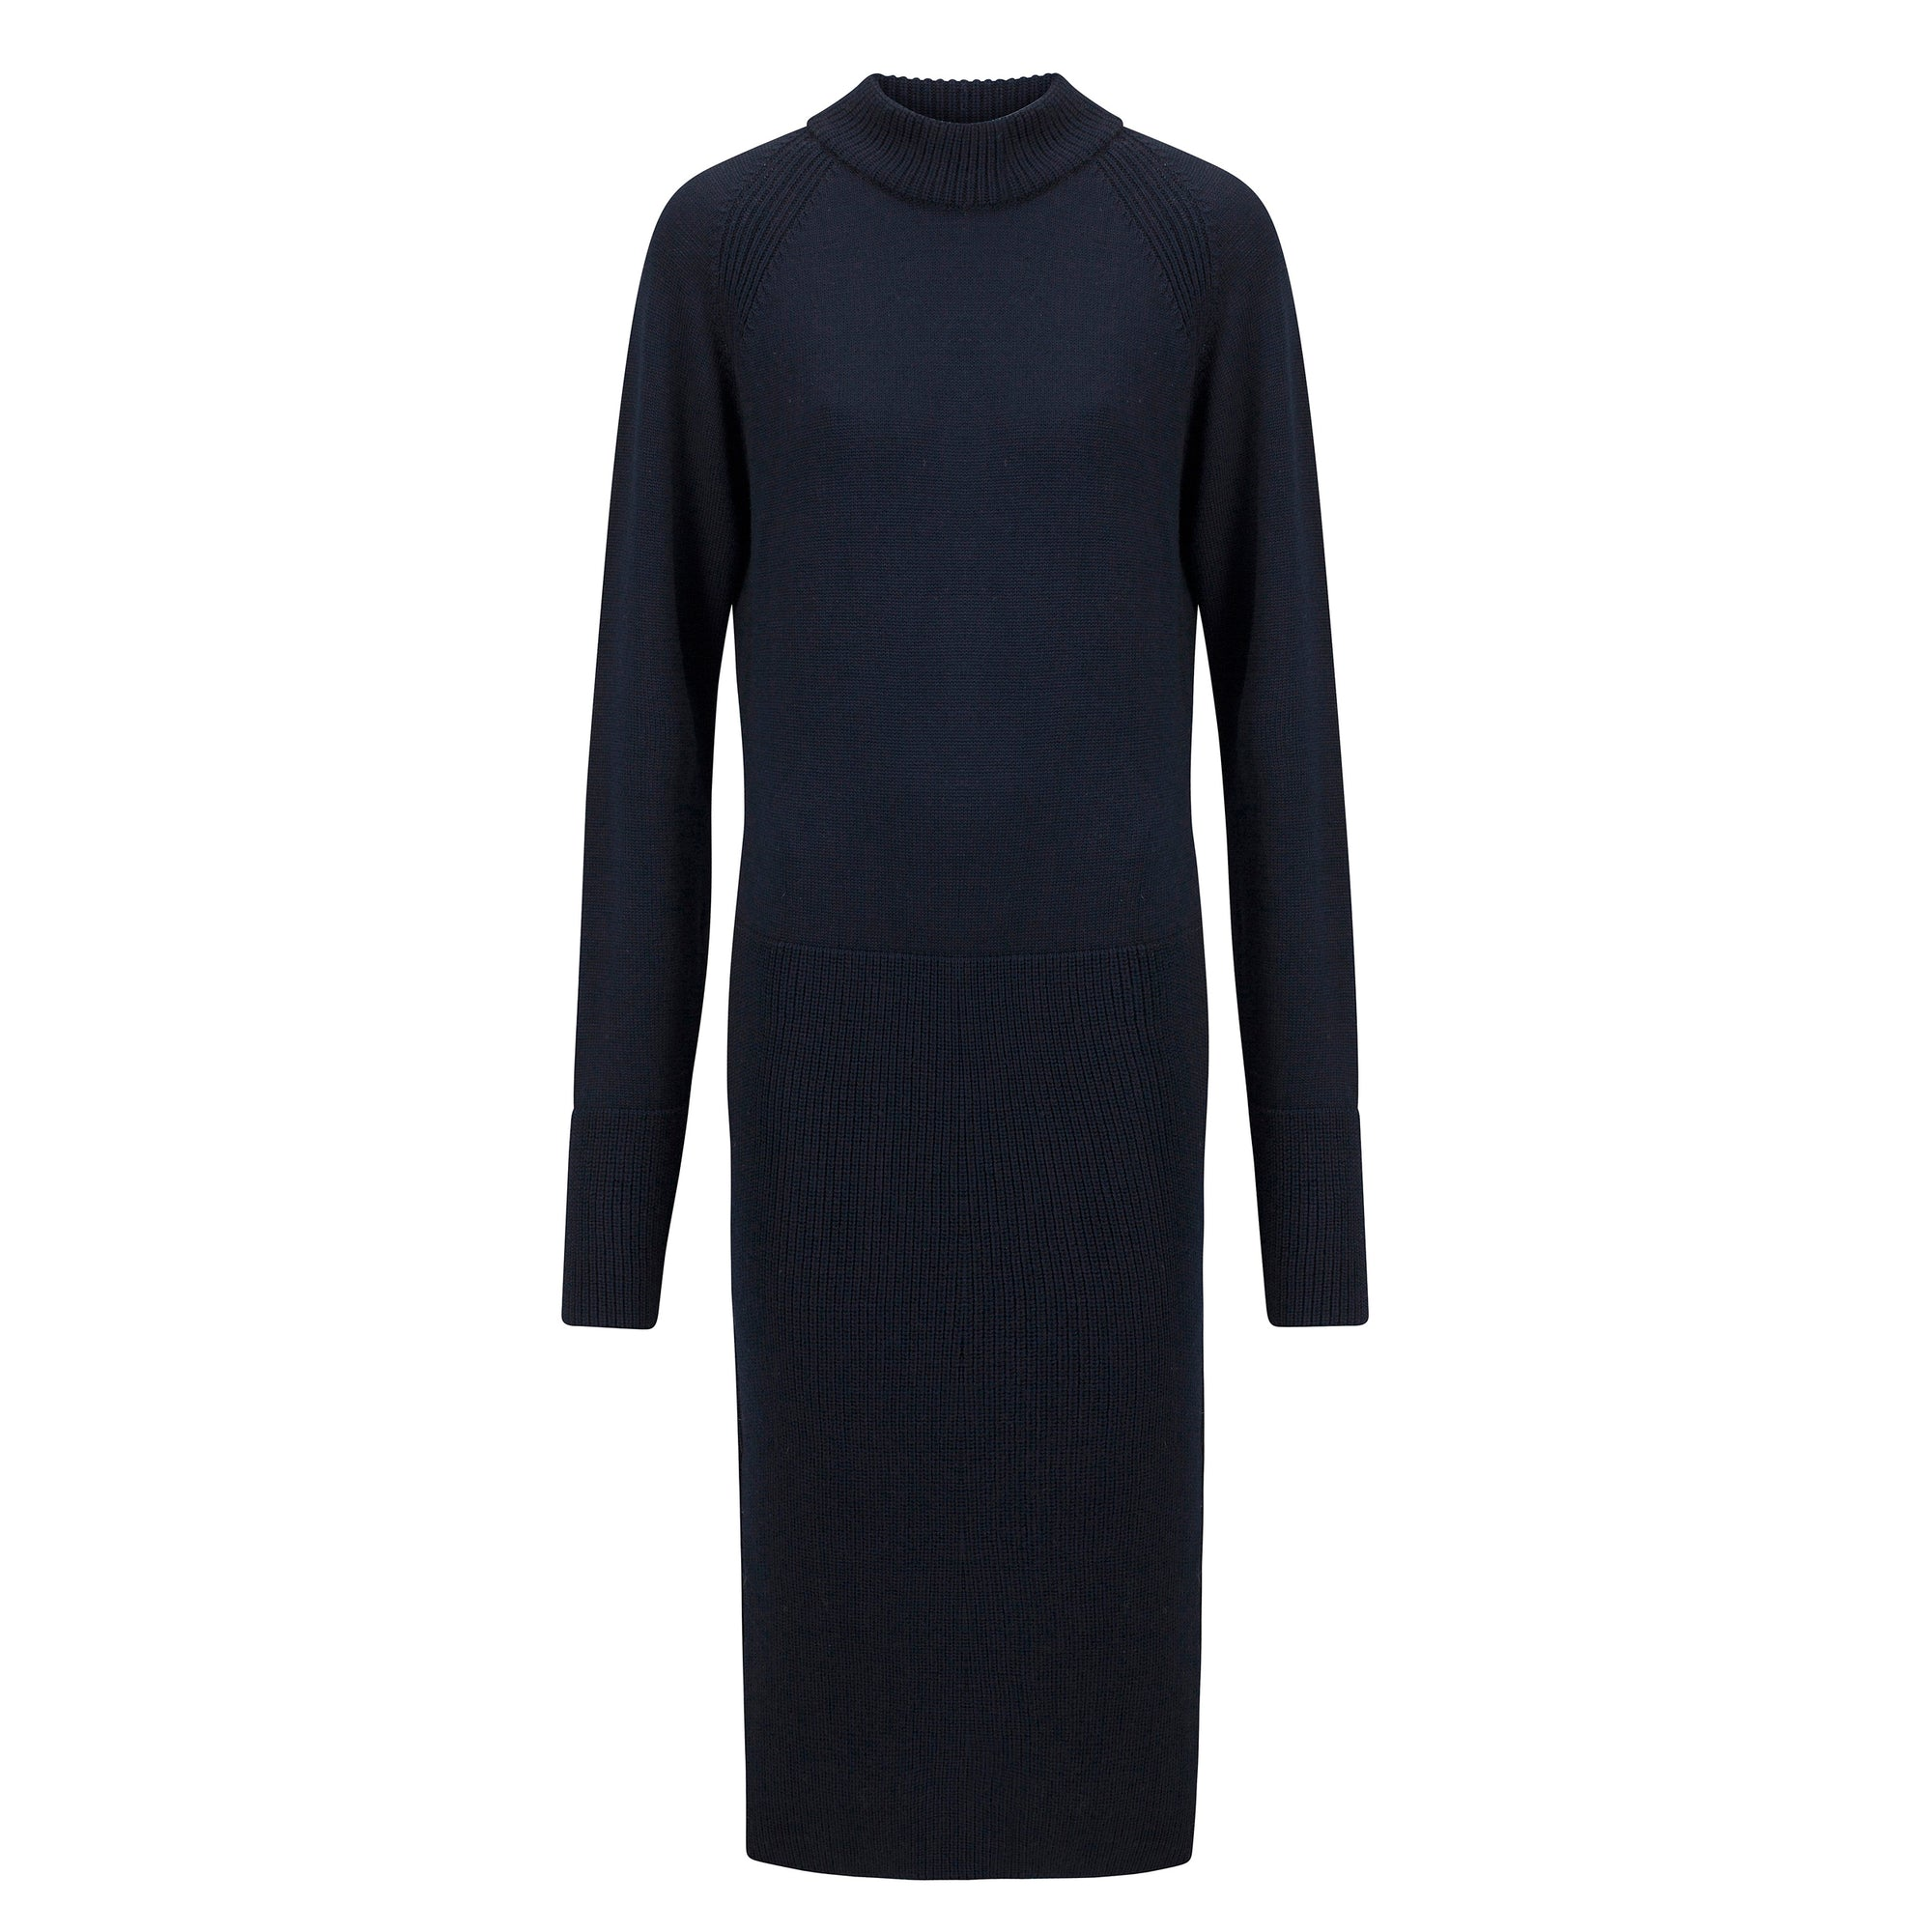 Home Merino Knit Dress